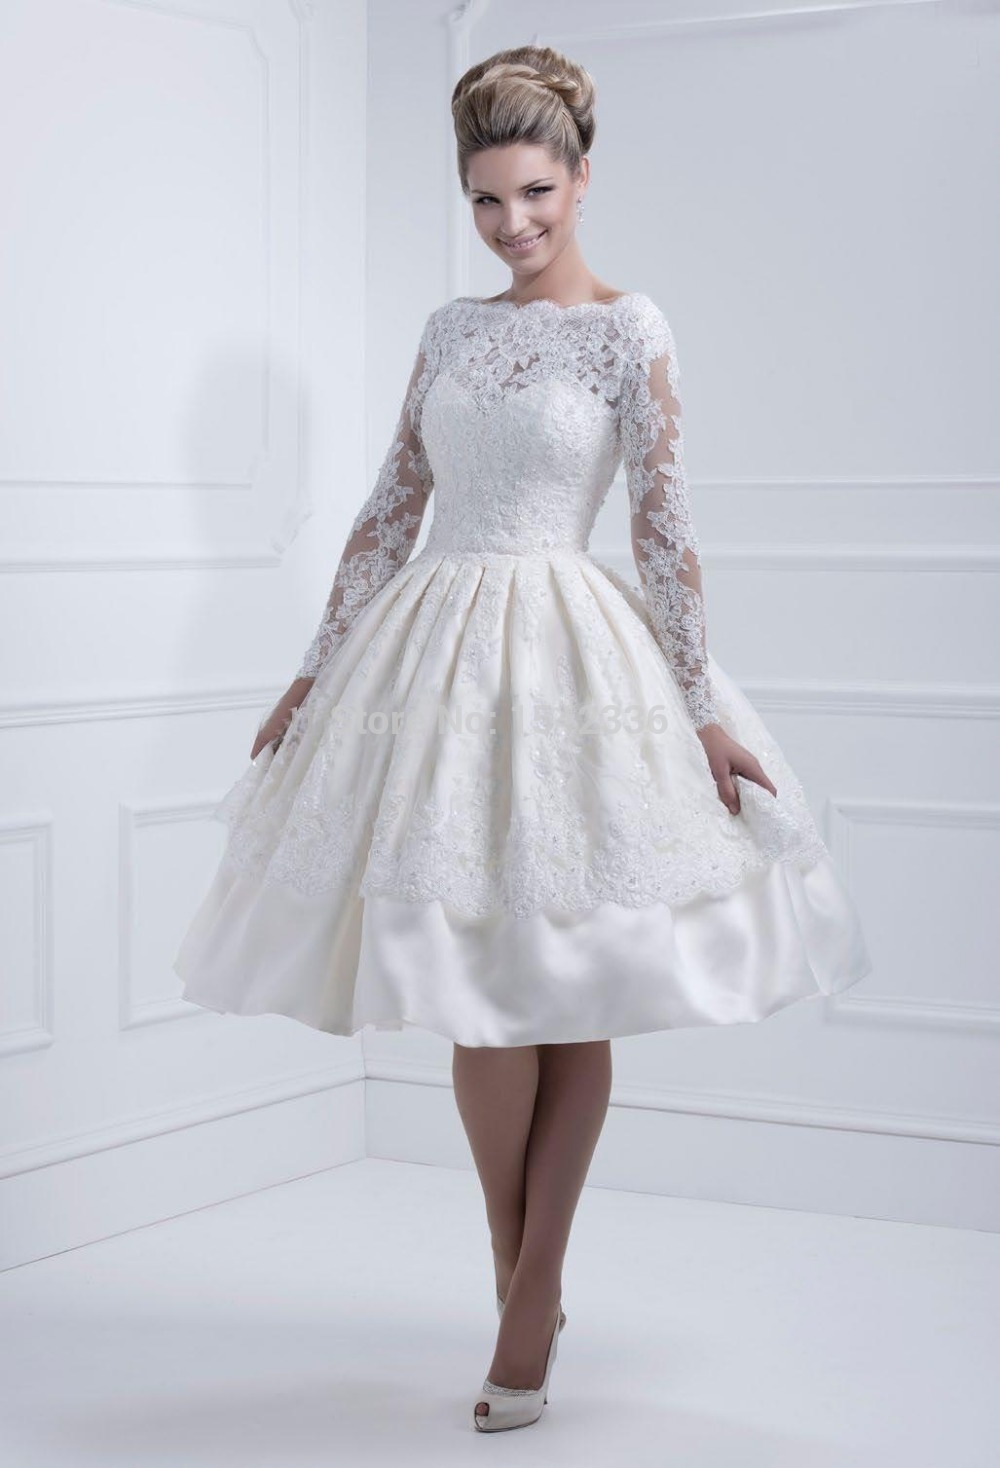 Lace long sleeves wedding dresses 2016 bateau neckline new for No back wedding dress